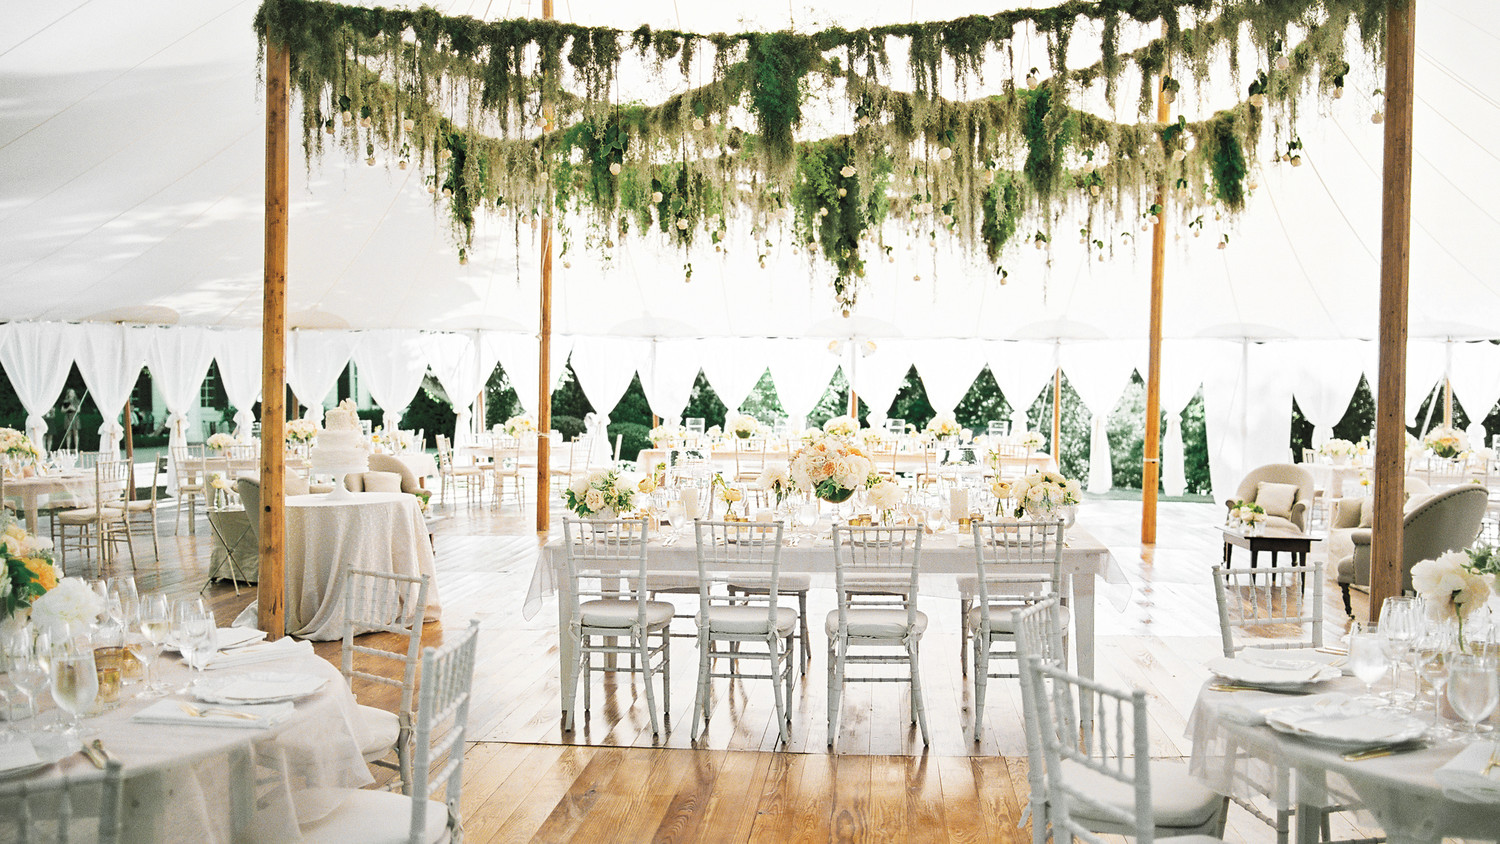 Outdoor Wedding Ideas: 28 Tent Decorating Ideas That Will Upgrade Your Wedding